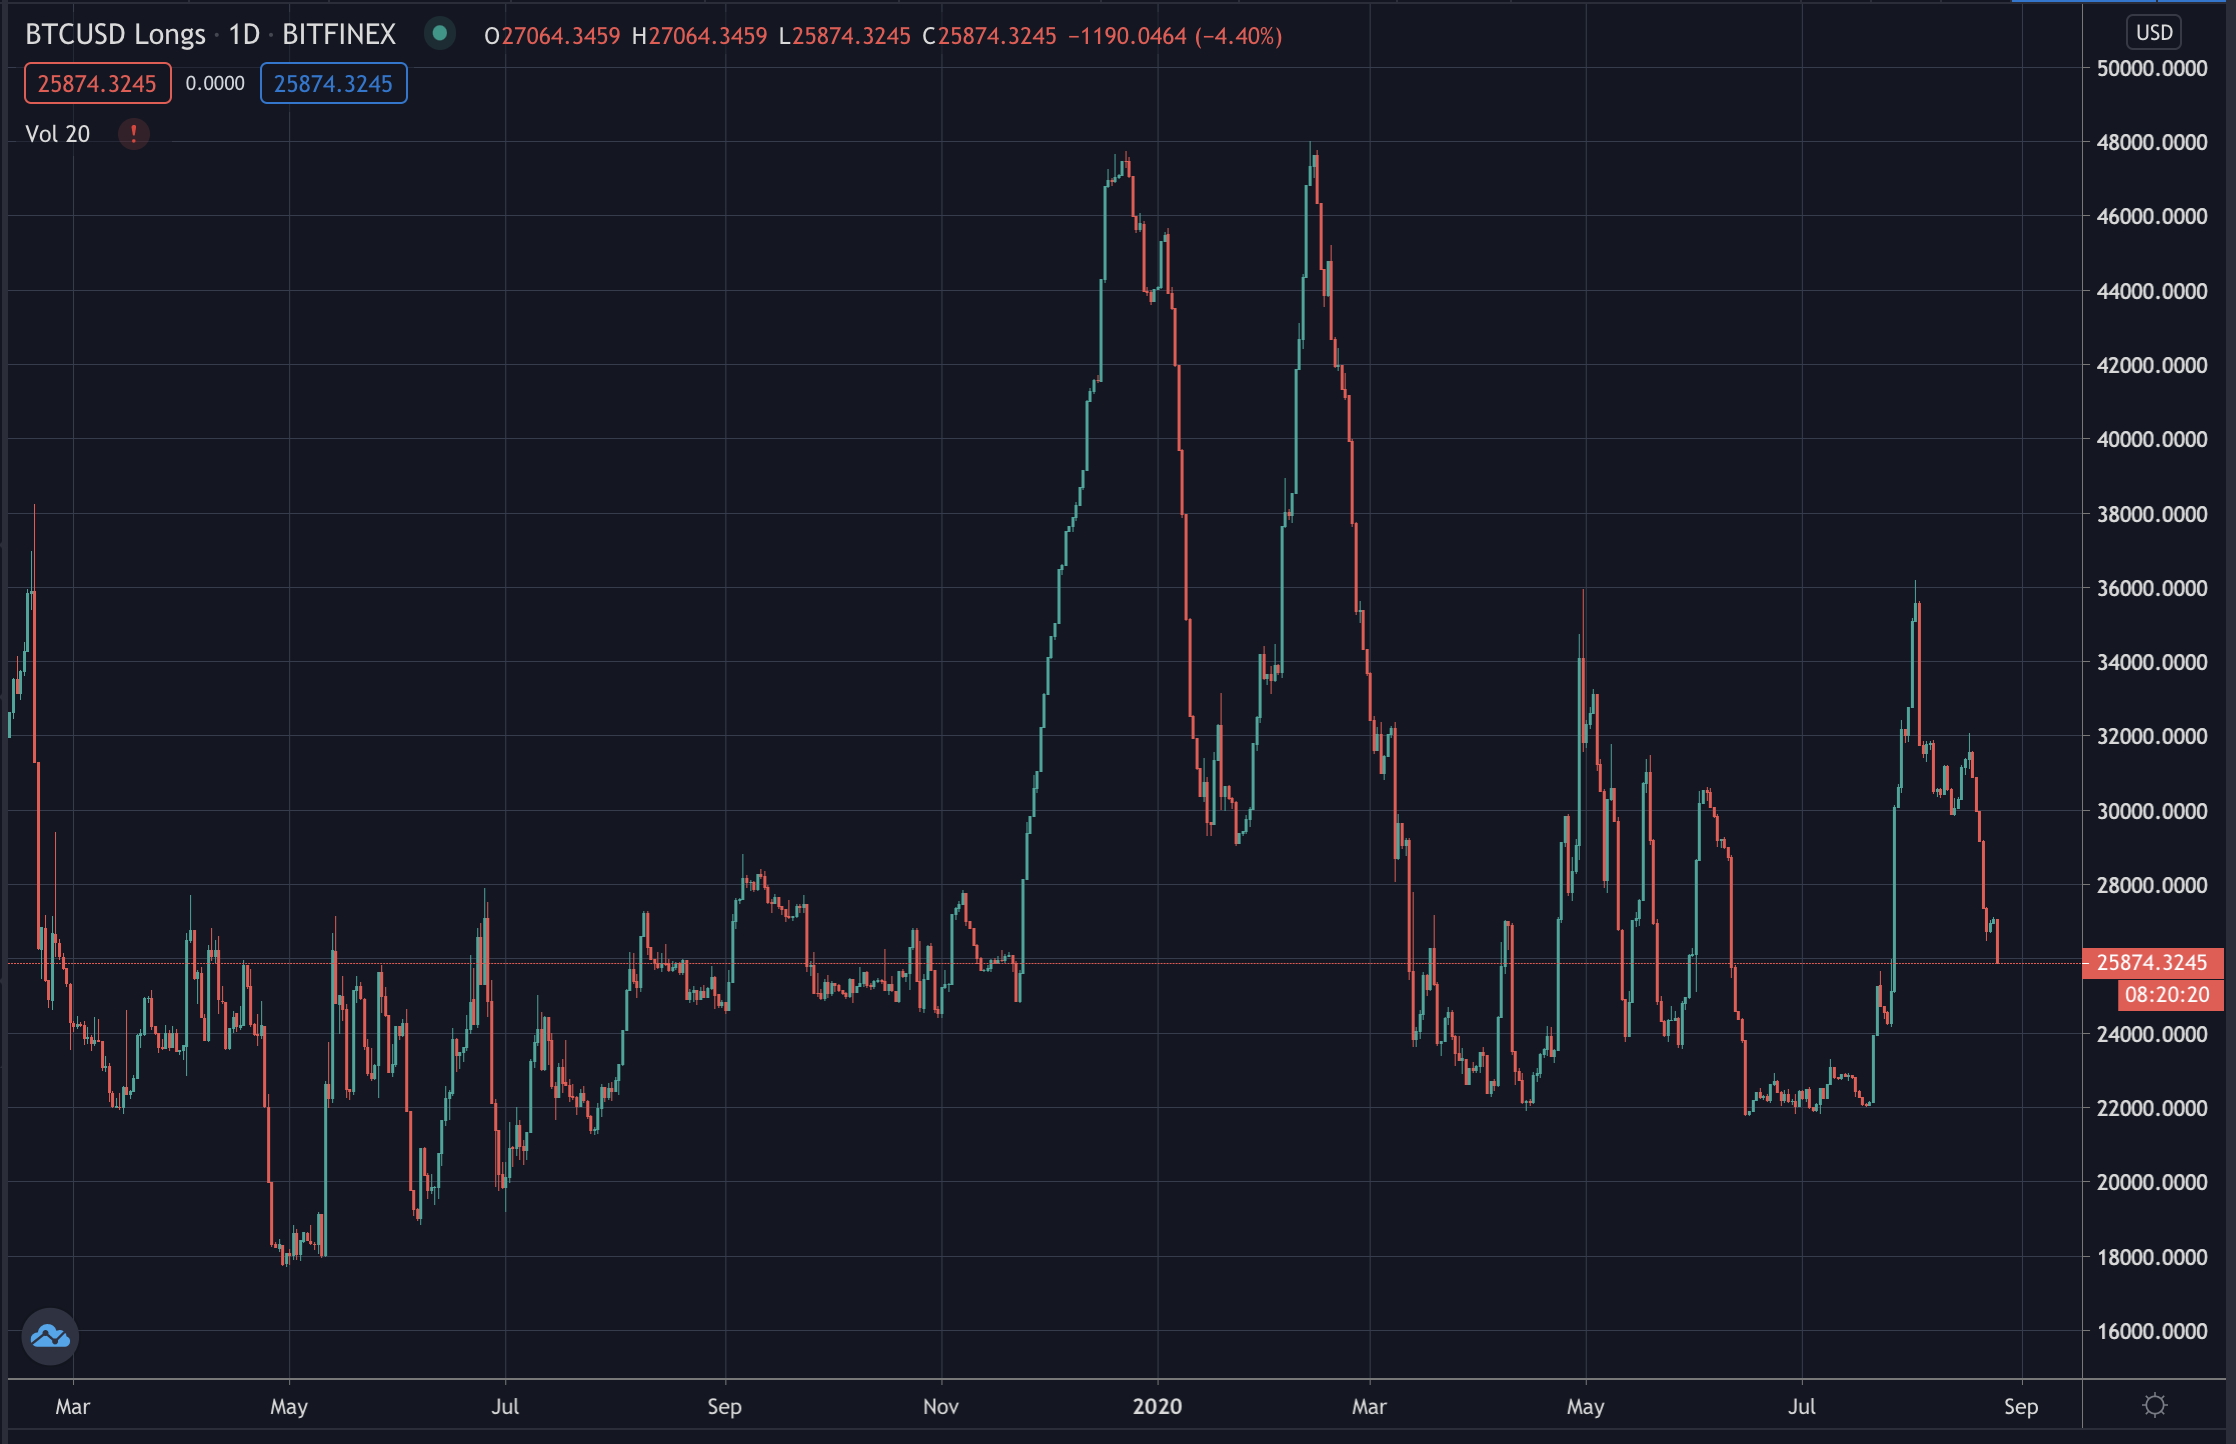 Bitcoin longs on Bitfinex on daily candles, Aug 2020